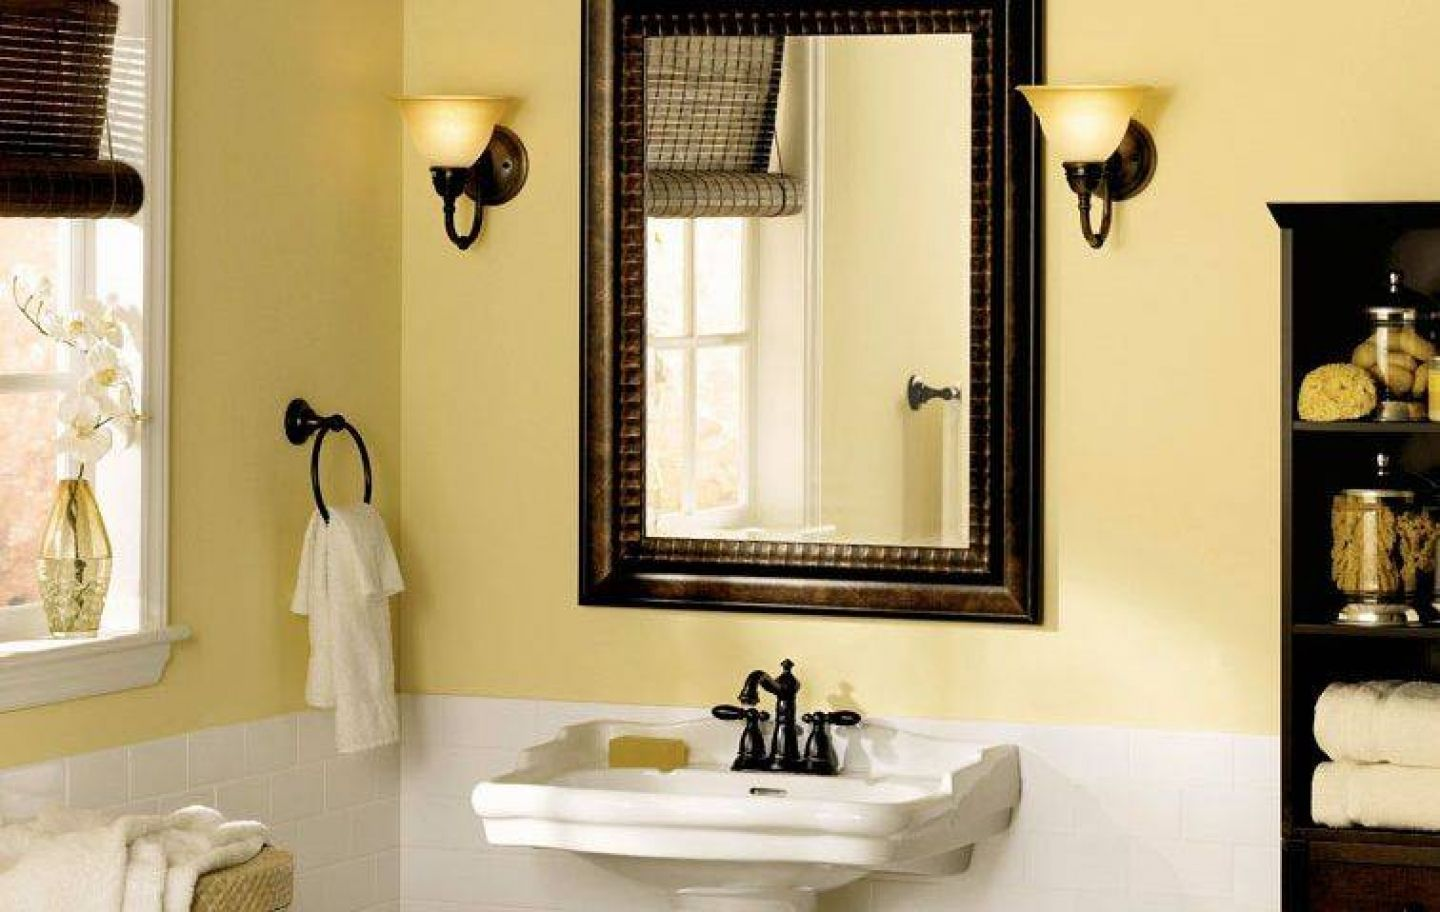 Rustic Vanity Lighting Also Black Faucet Design Feat Nice Yellow ...